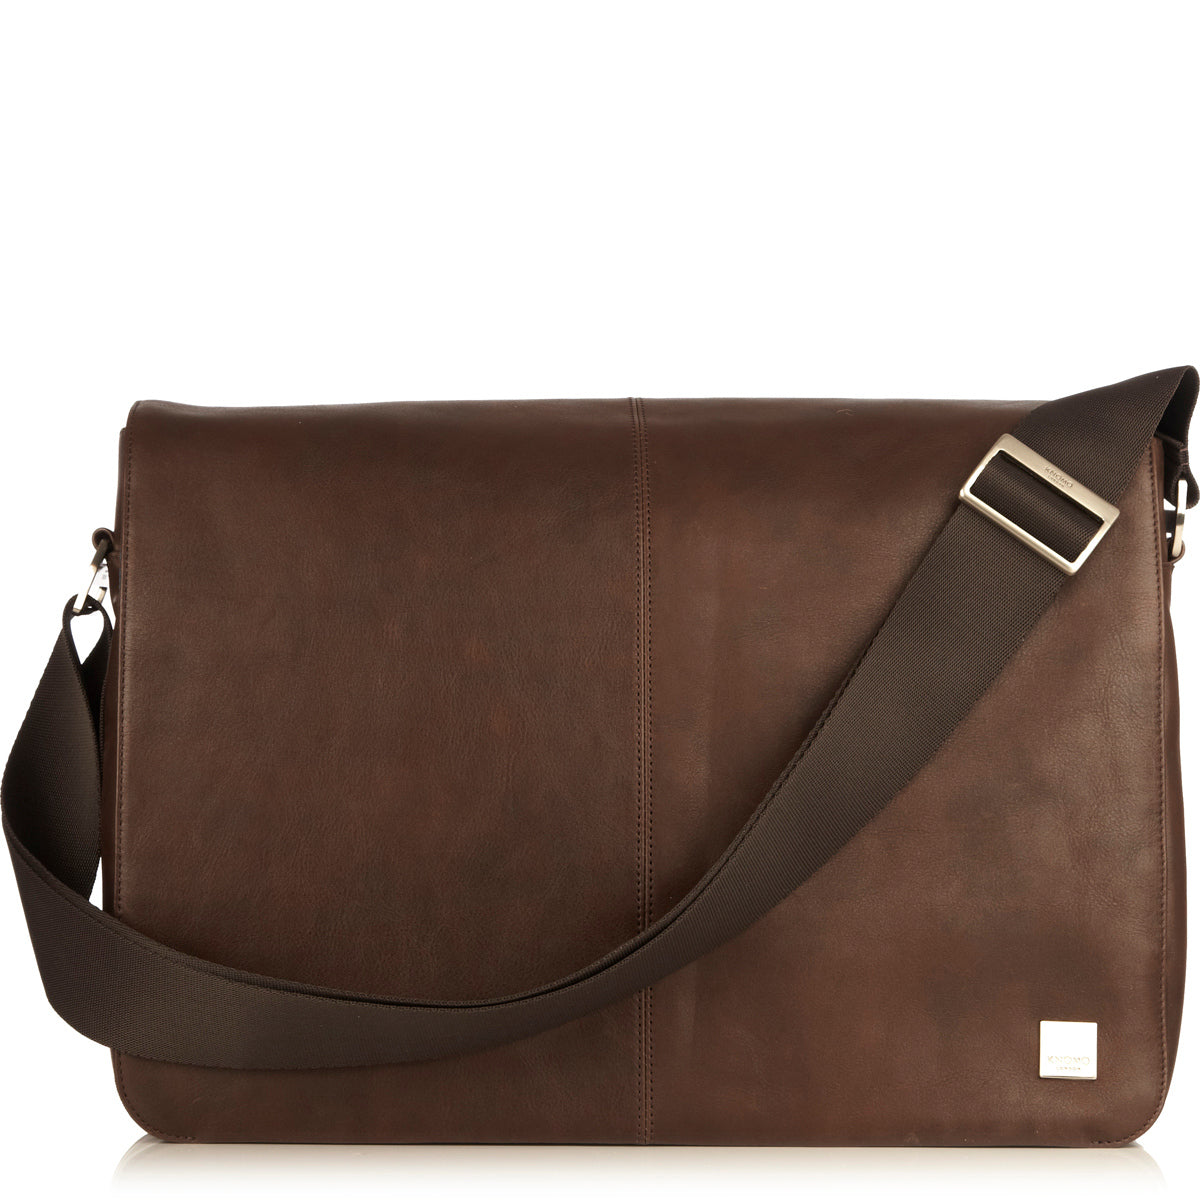 "Bungo Leather Laptop Messenger Bag - 15.6"" -  Brown 